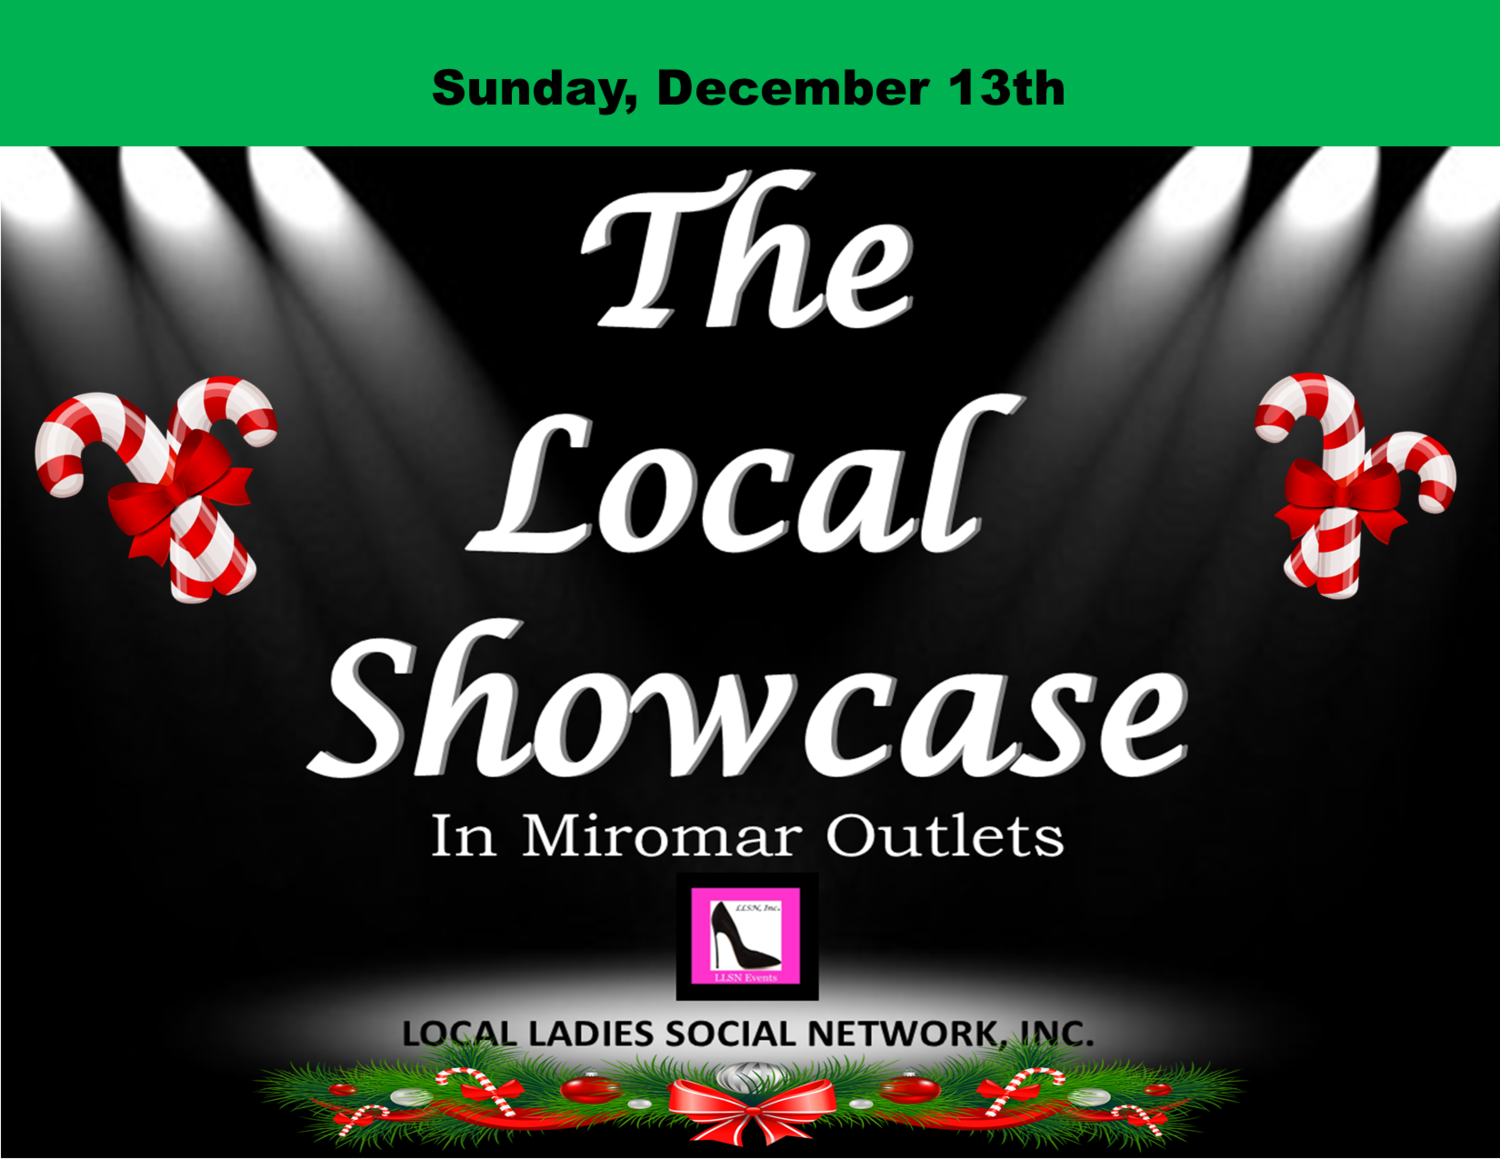 Sunday, December 13th 12pm-6pm